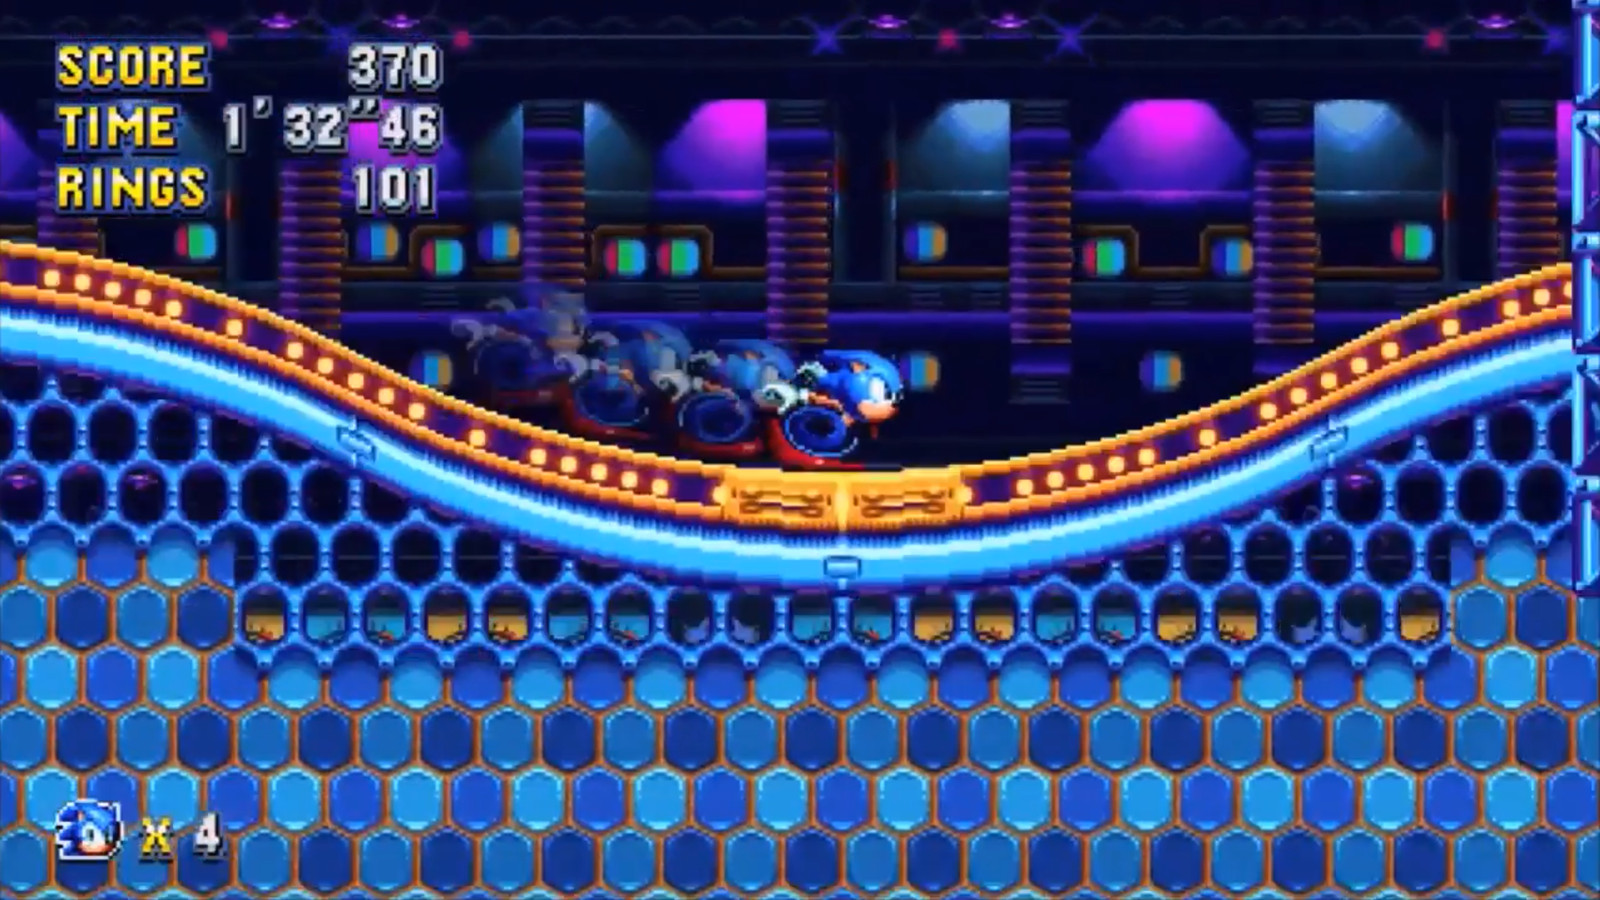 Relive Sonic the Hedgehog's glory days with this eclectic remix album